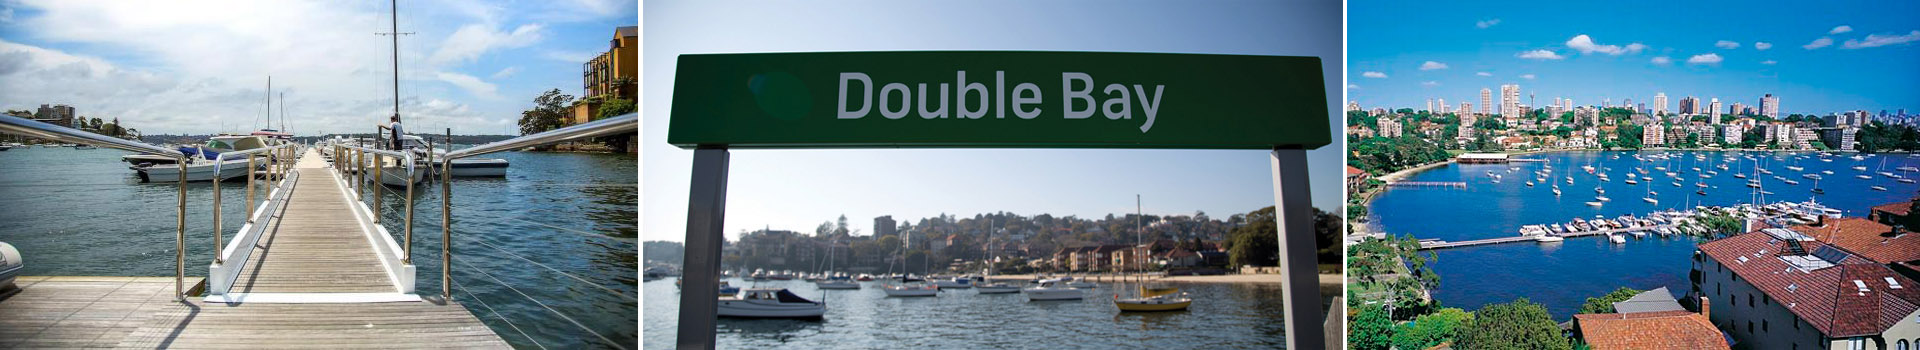 Double Bay Marina